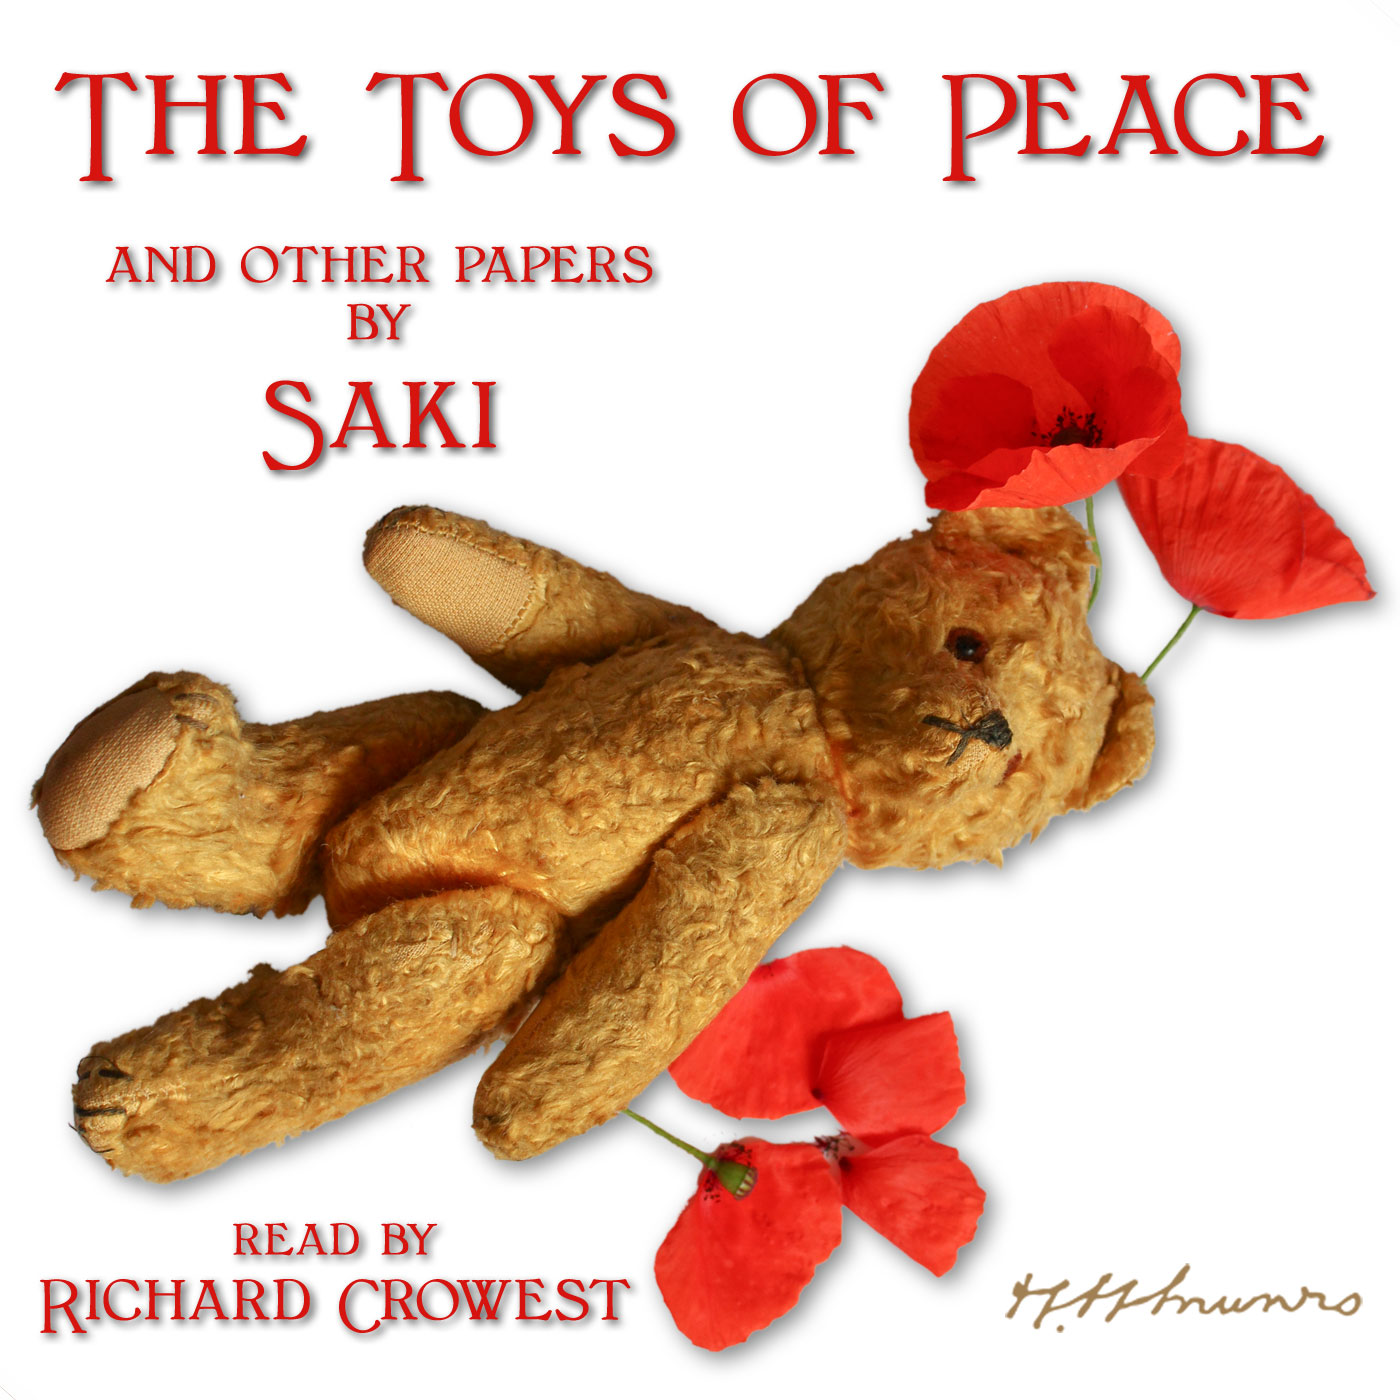 The Toys of Peace and other papers, by Saki